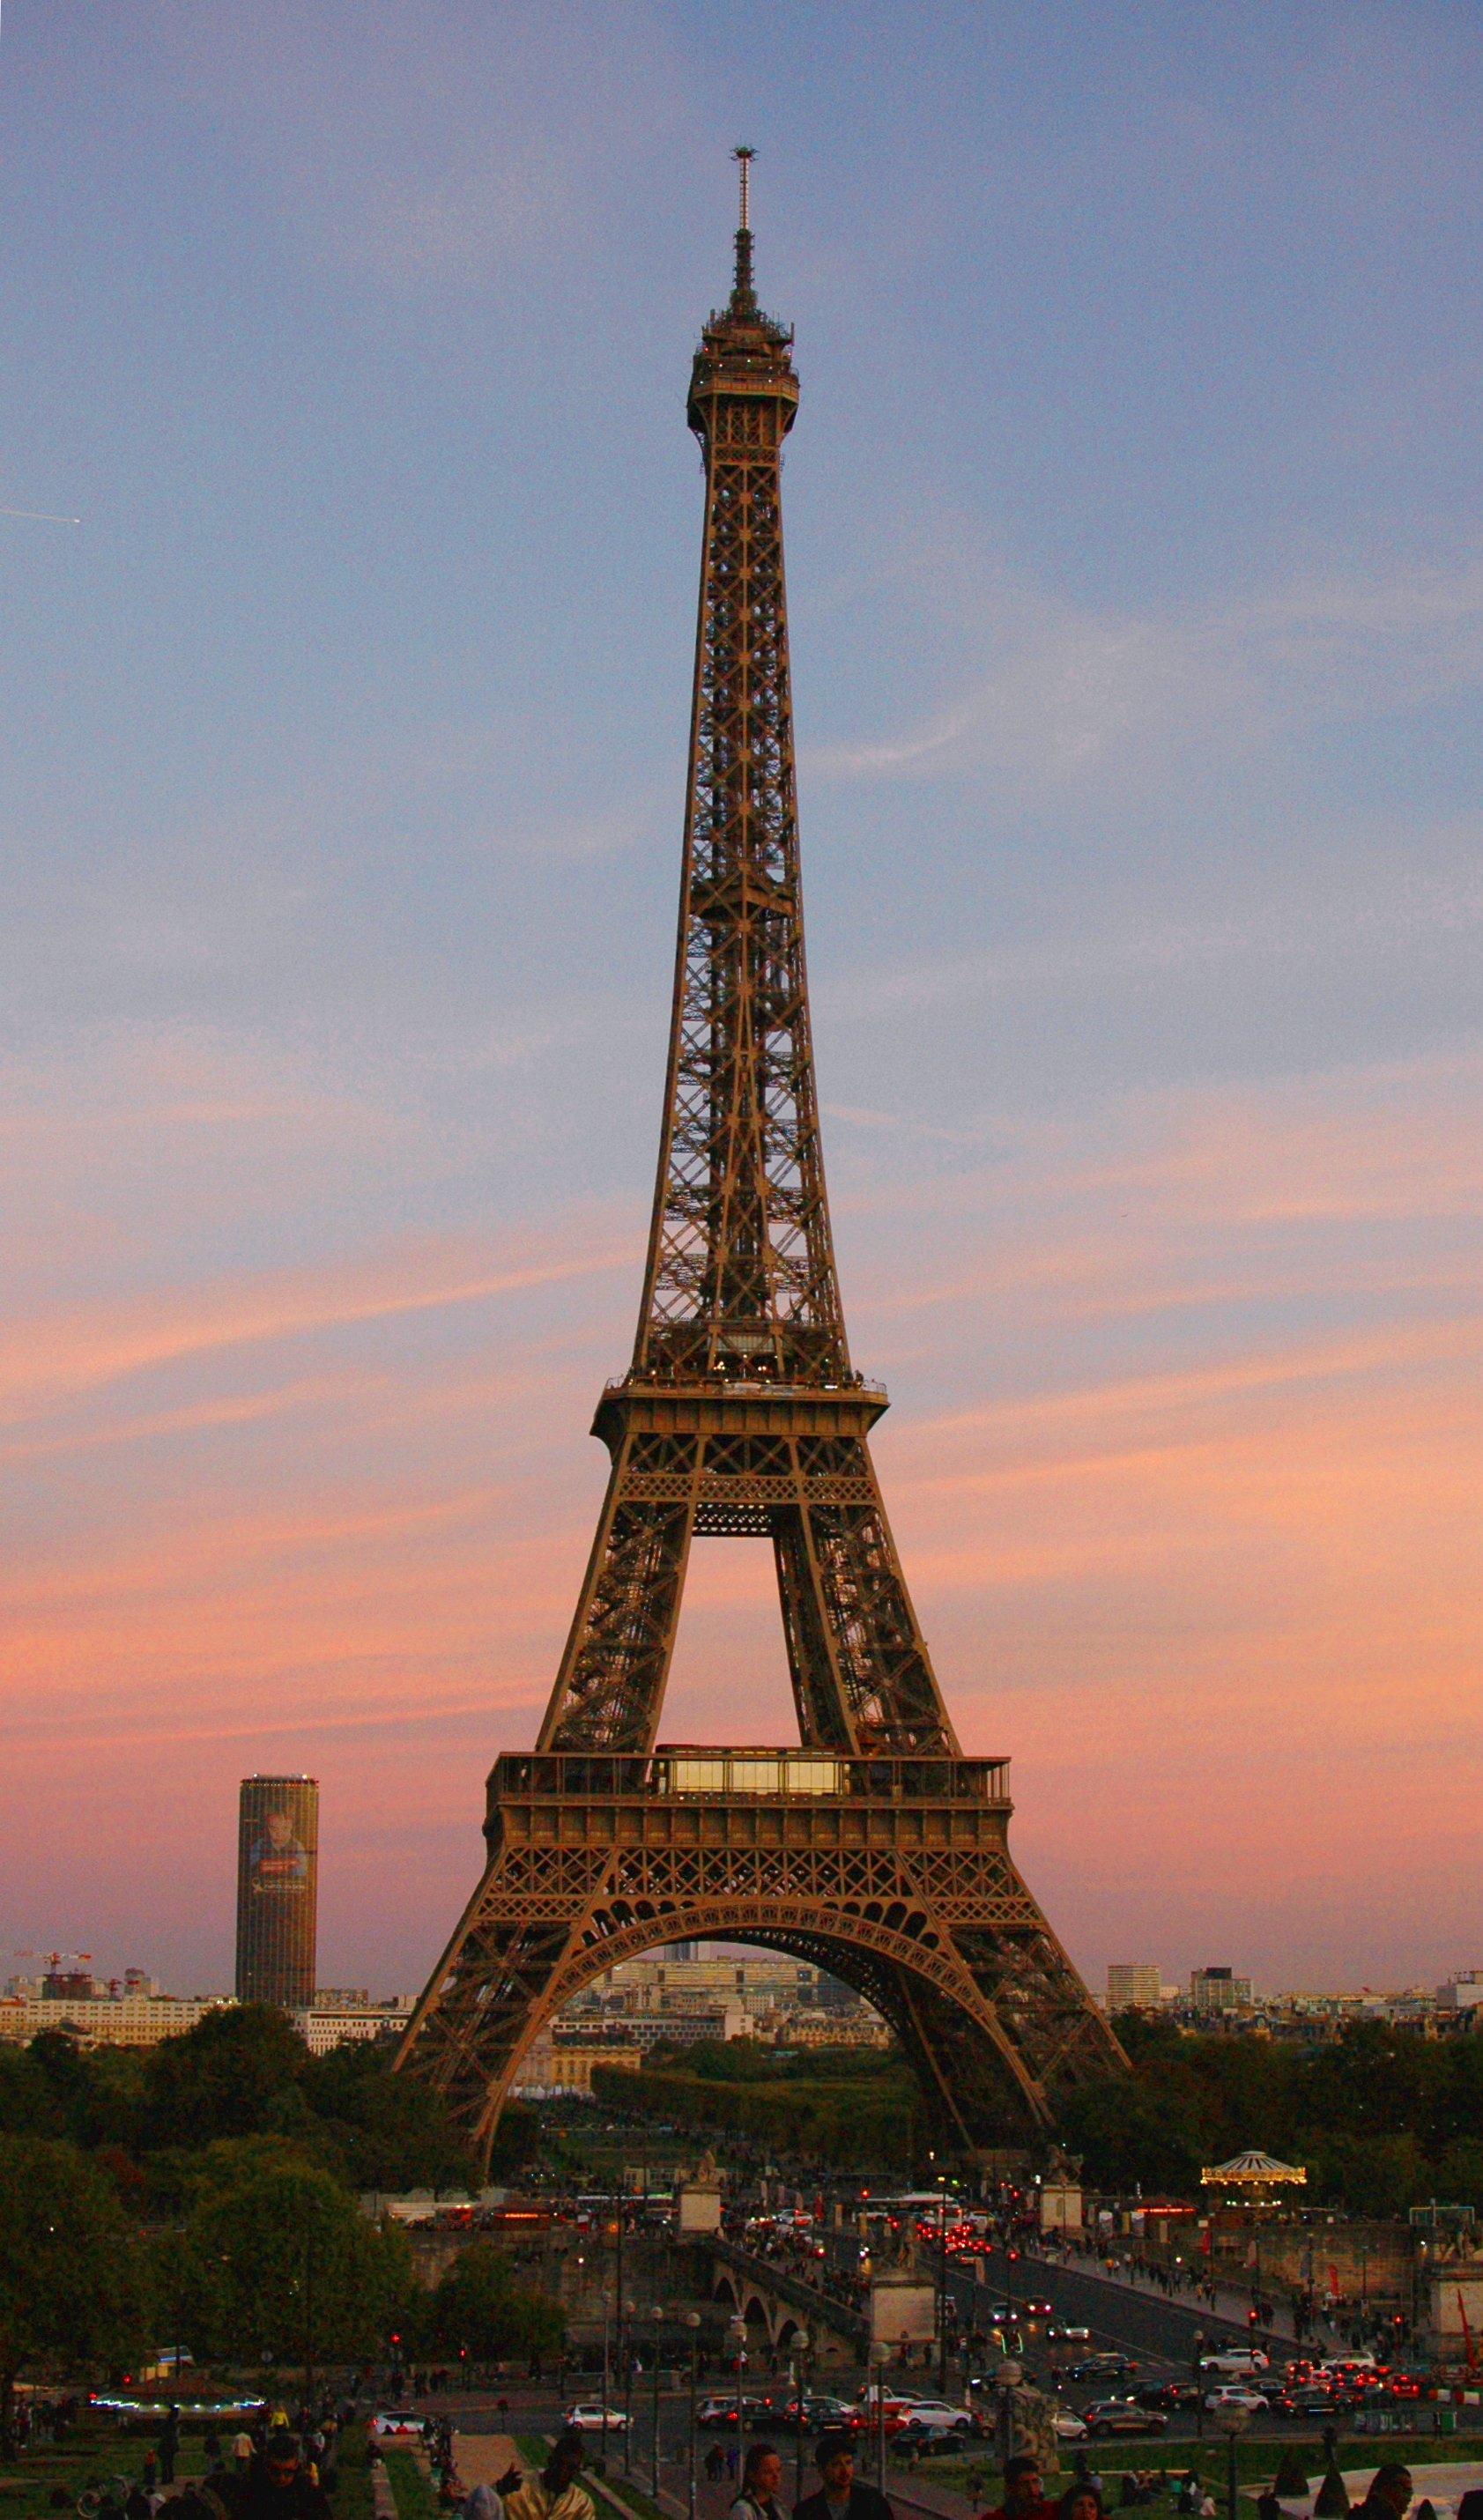 Eiffel Tower at Sunset, Paris, France